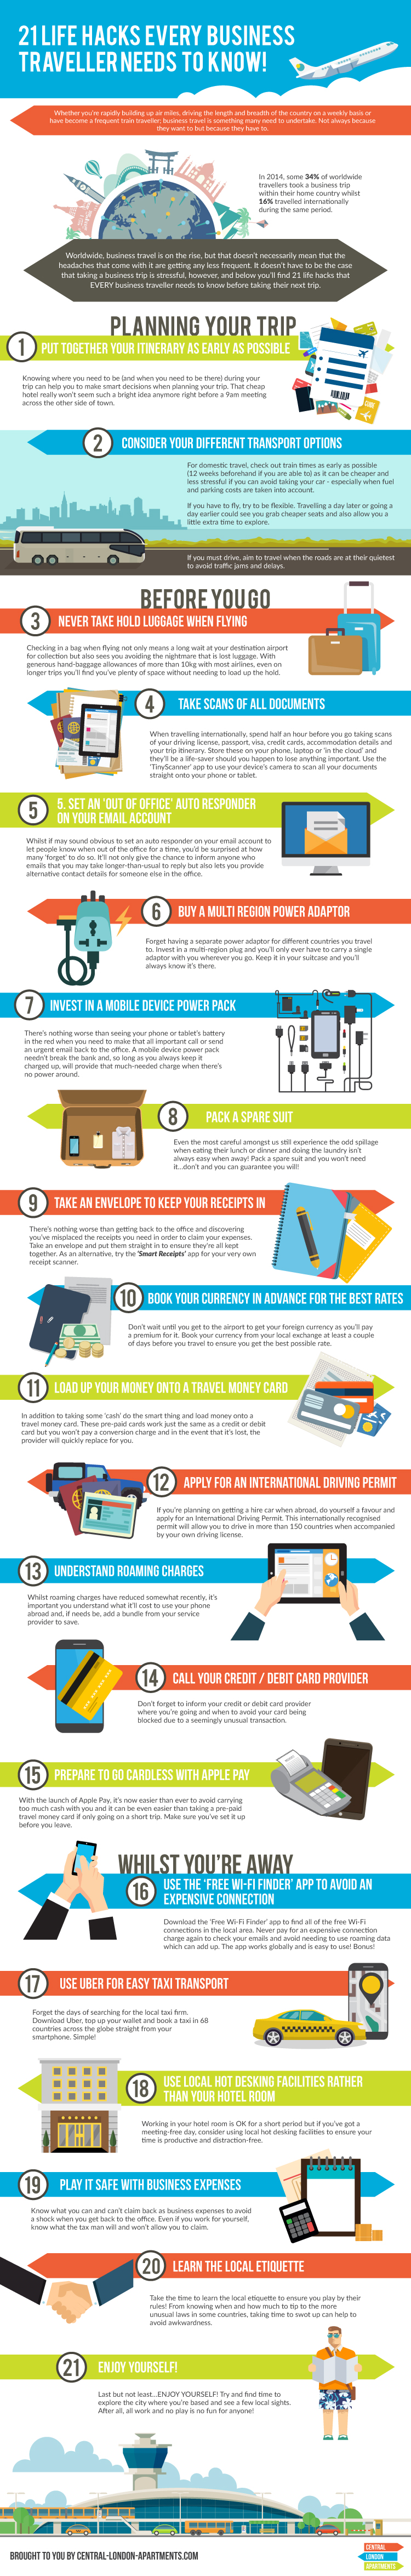 21-business-travel-life-hacks